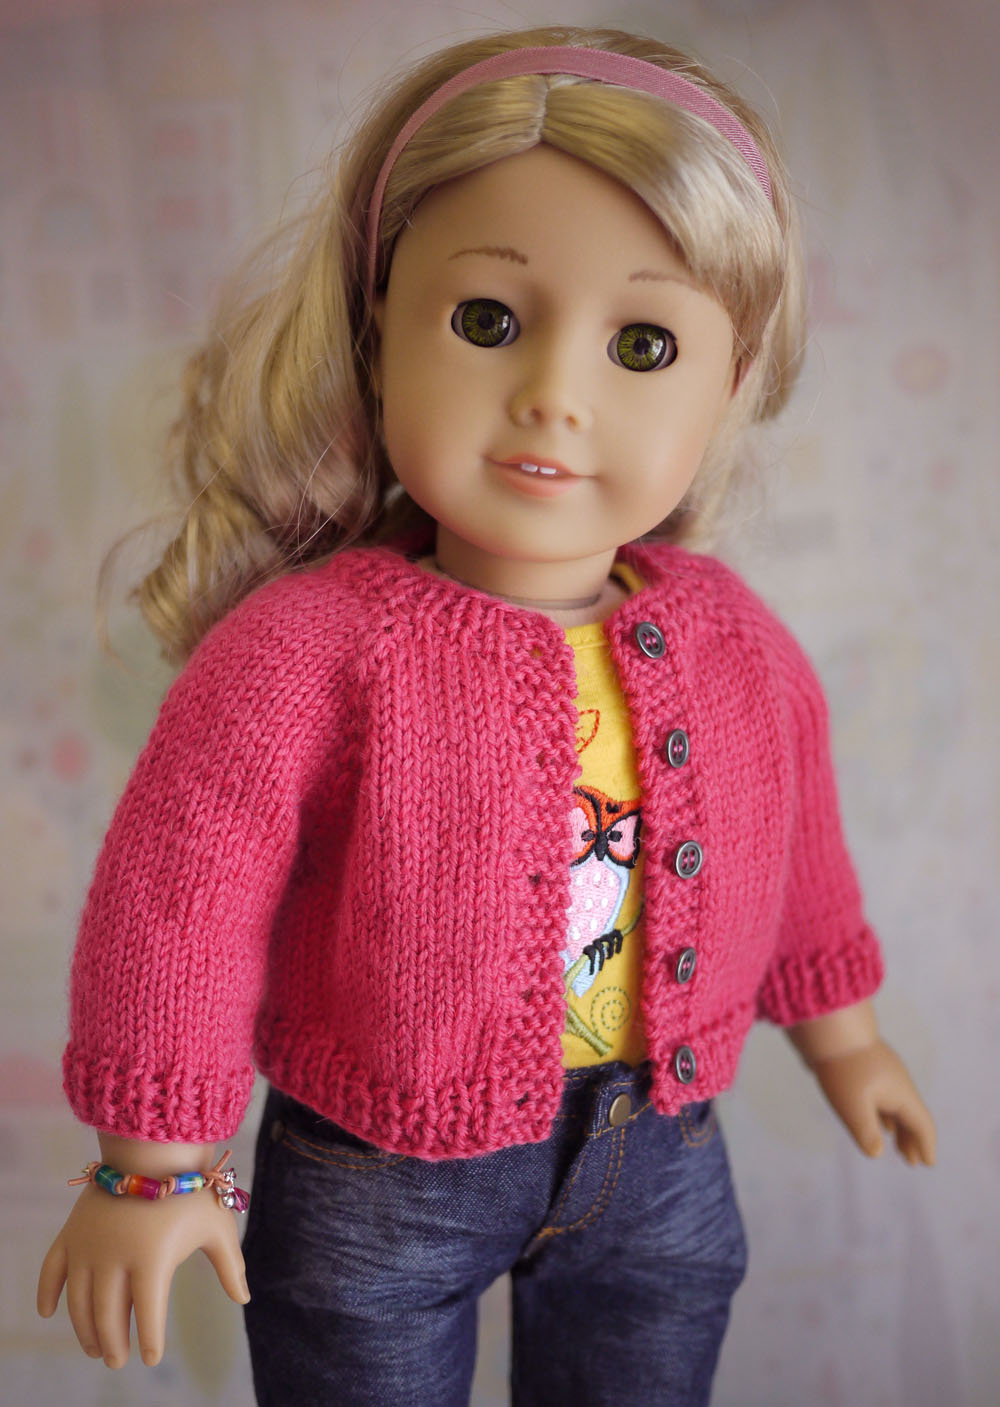 Sweater Knitting Patterns : American Girl Doll Cardigan Sweater Knitting Pattern Cindy Rice ...